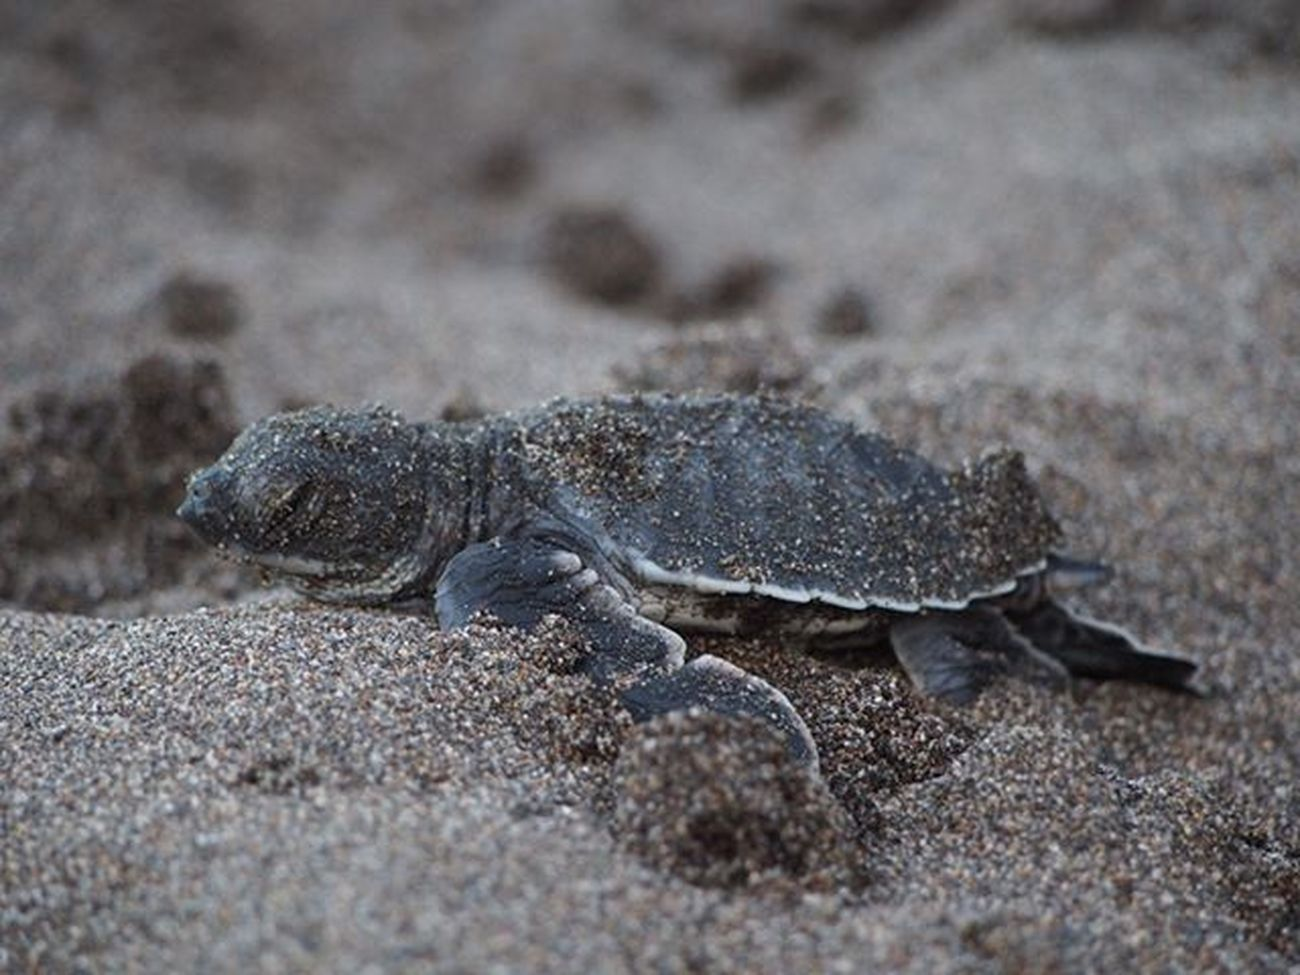 A baby turtle trying to get to the sea at the Tortuguero National Park It made it!!!!! :) ------------------------------------------- Turtle Babyturtle Greenback Tooyoung Tooyoungtodie Tortuguero  Tortugueronationalpark Costarica Explorecostarica Travelling Cute Cutebaby Wanderlust Instatravel Travel Conservation Instanature Naturelovers Nature Gadventures Olympus